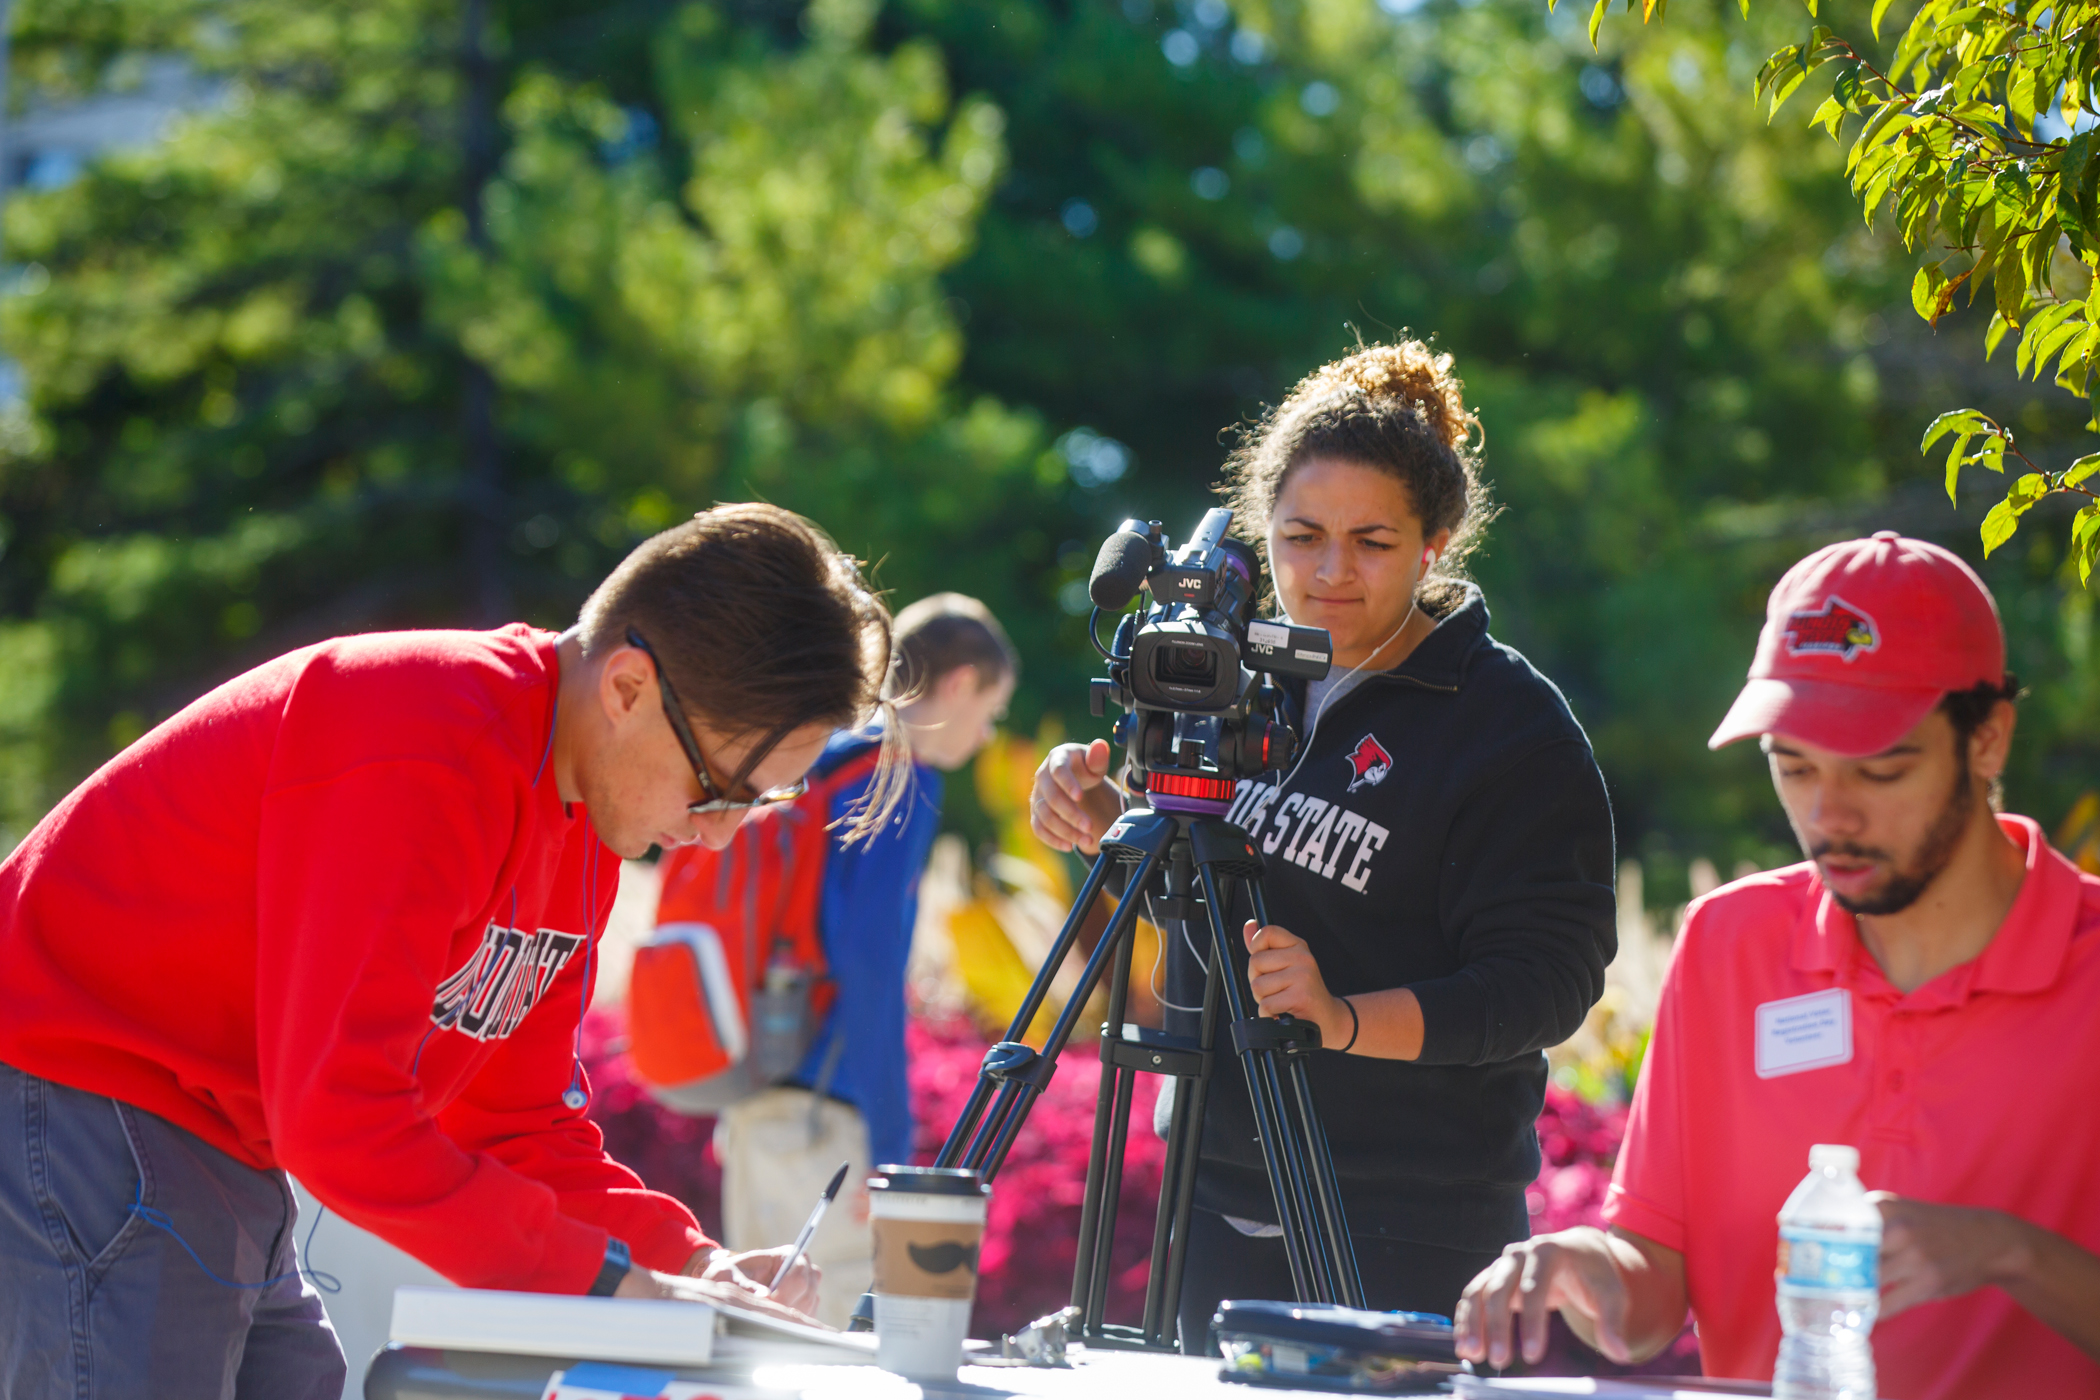 Illinois State student films with an industry-grade camera